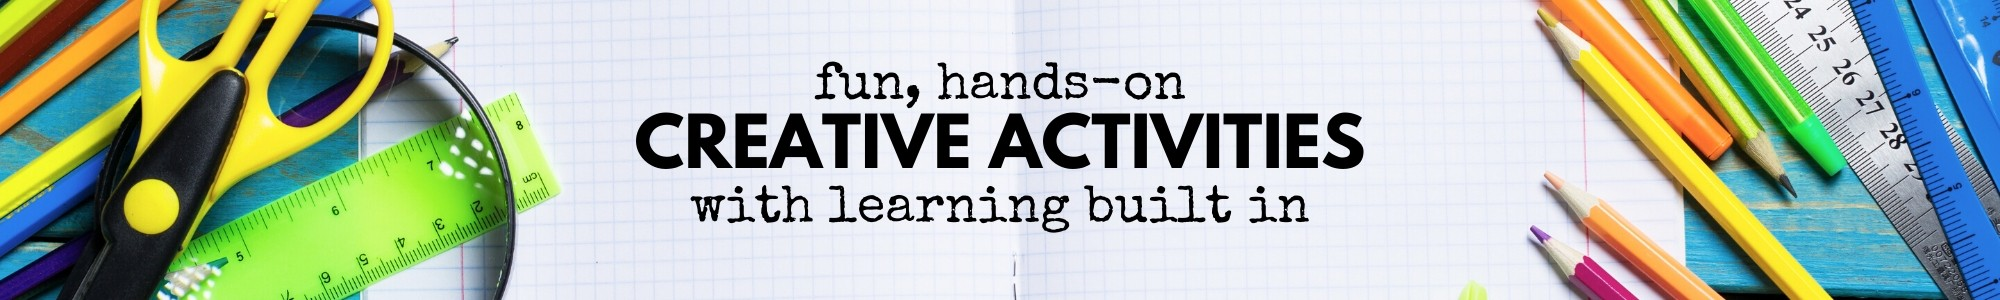 fun hands-on creative activities with learning built in 2000x300 v2